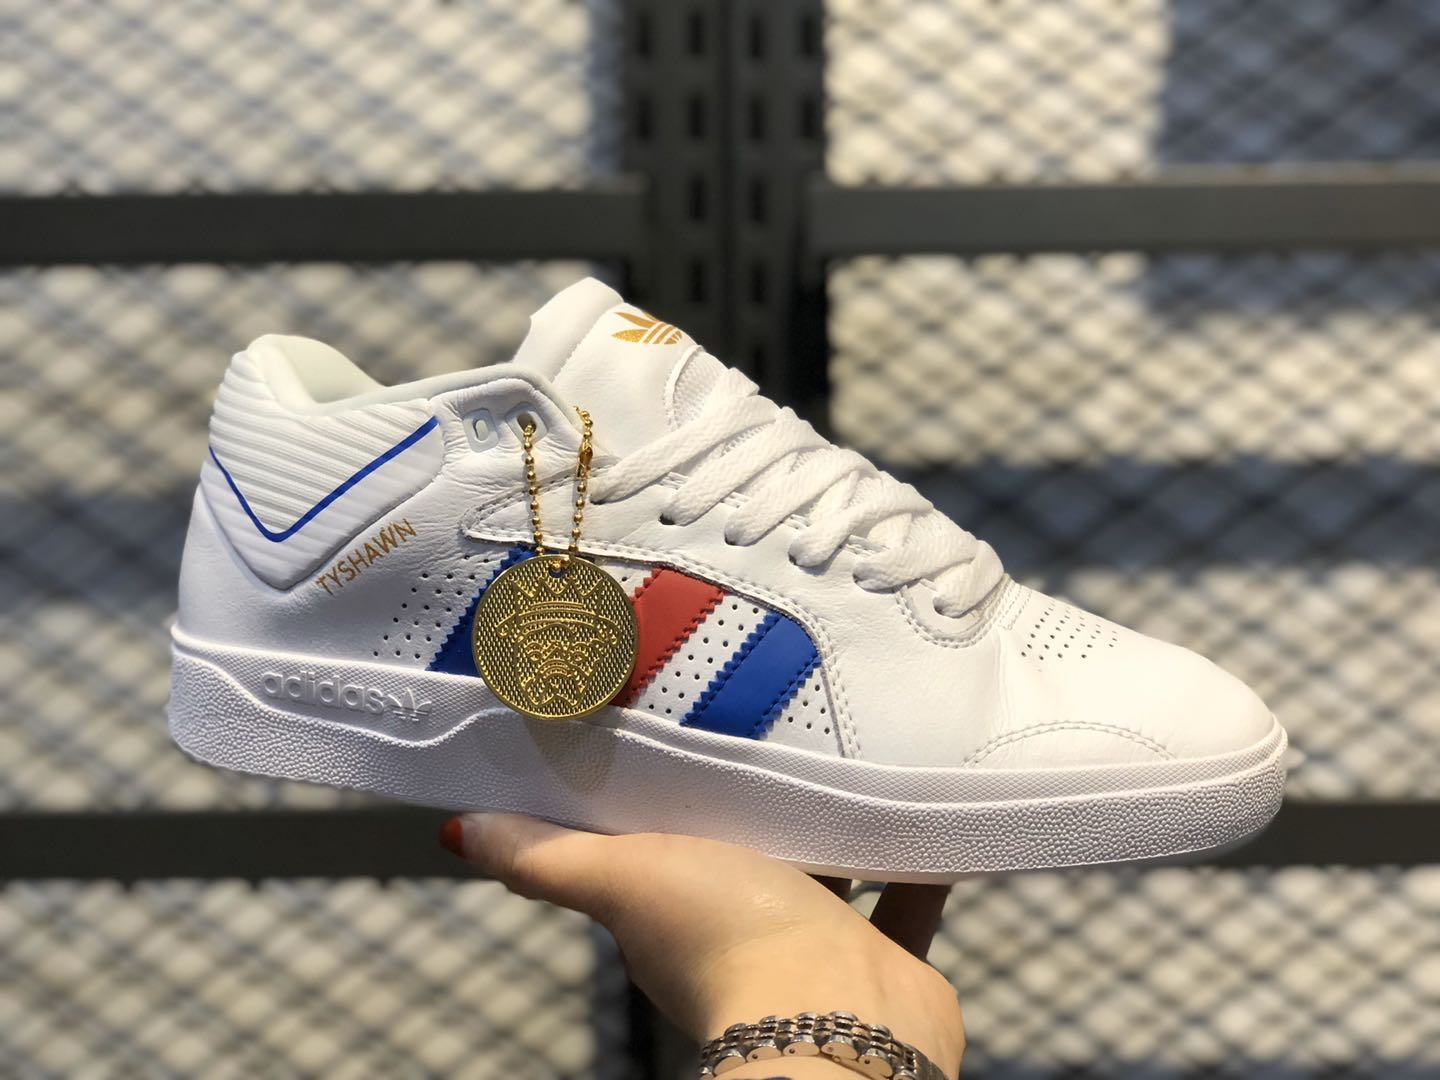 Adidas Tyshawn Low Cloud White/Blue-Red Sneakers Online Buy EG6085